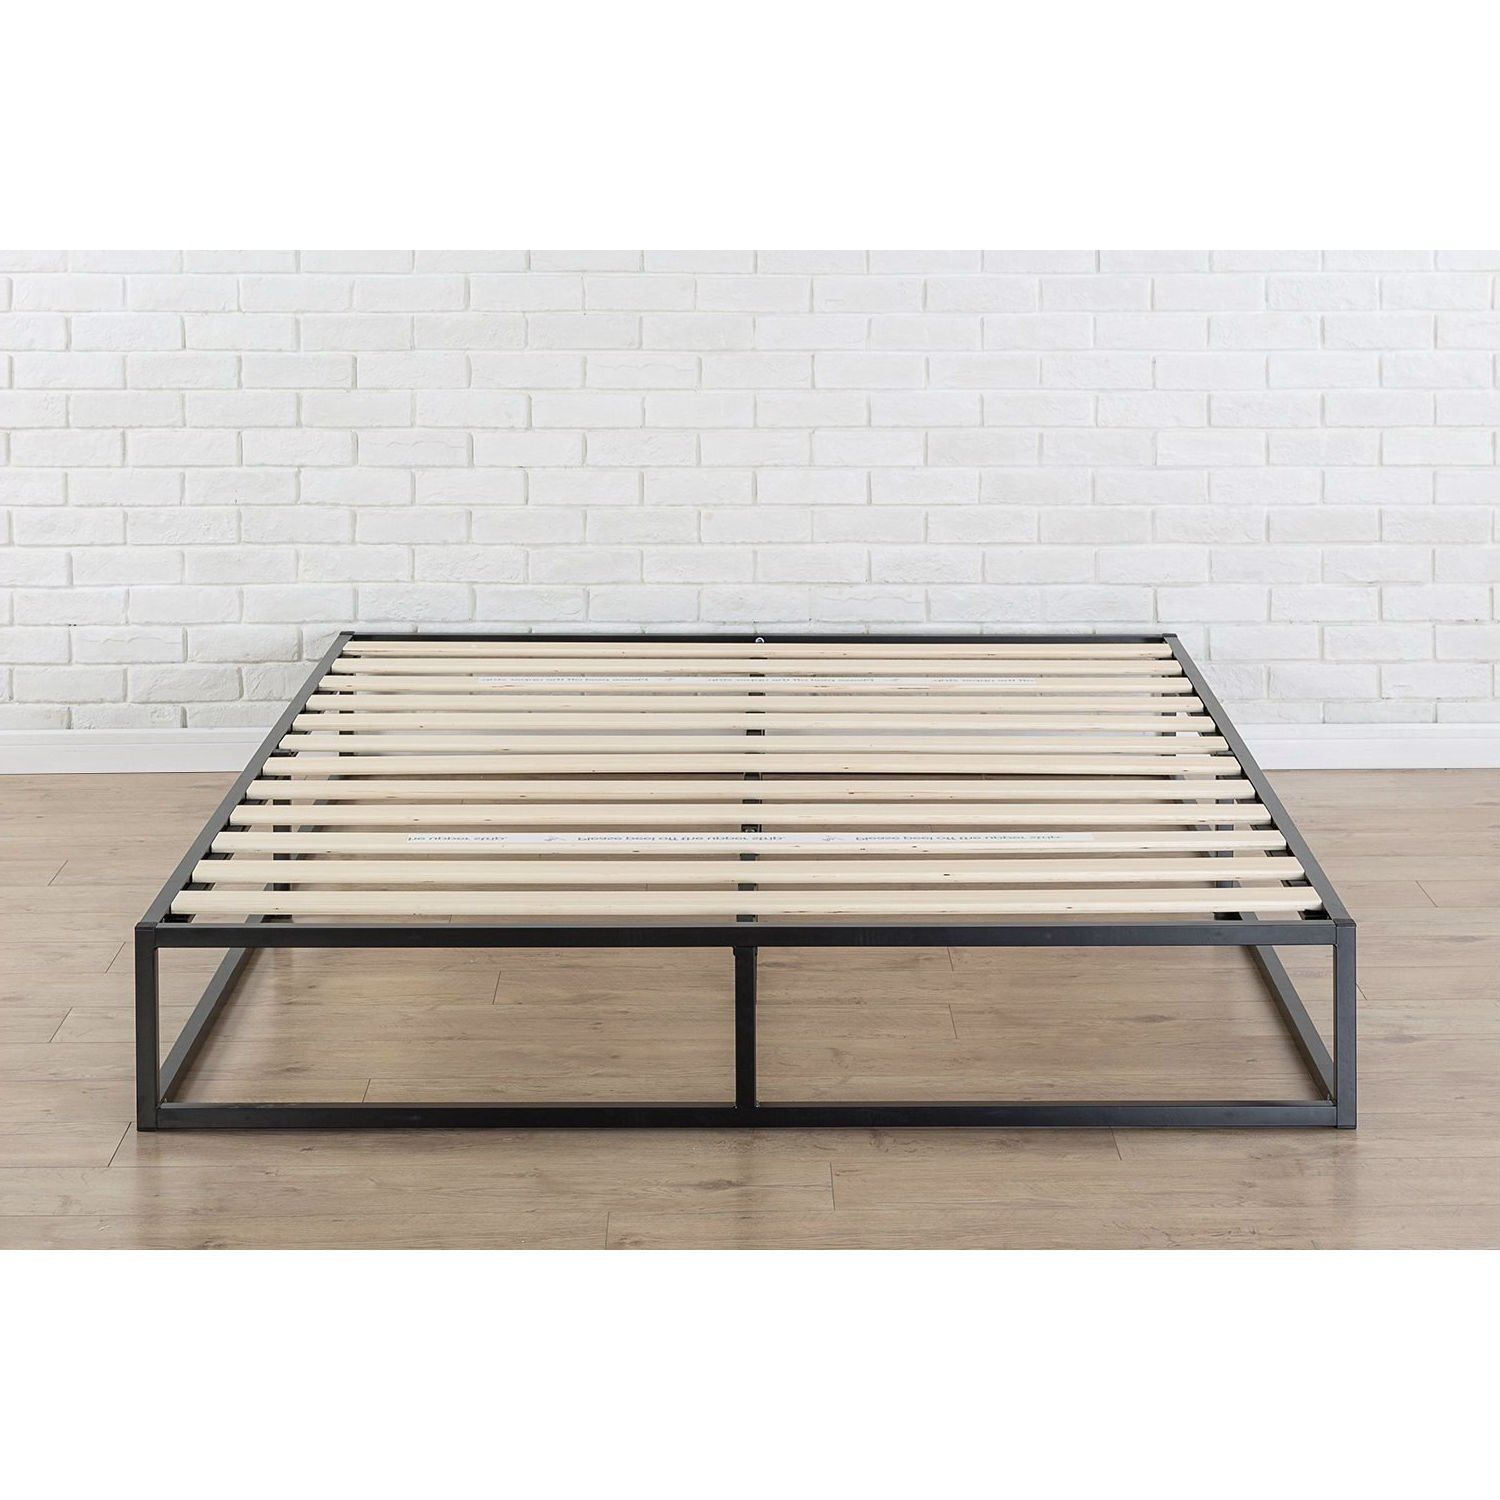 King Size Modern 10 Inch Low Profile Metal Platform Bed Frame With Wood Slats Low Platform Bed Frame Metal Platform Bed Platform Bed Frame